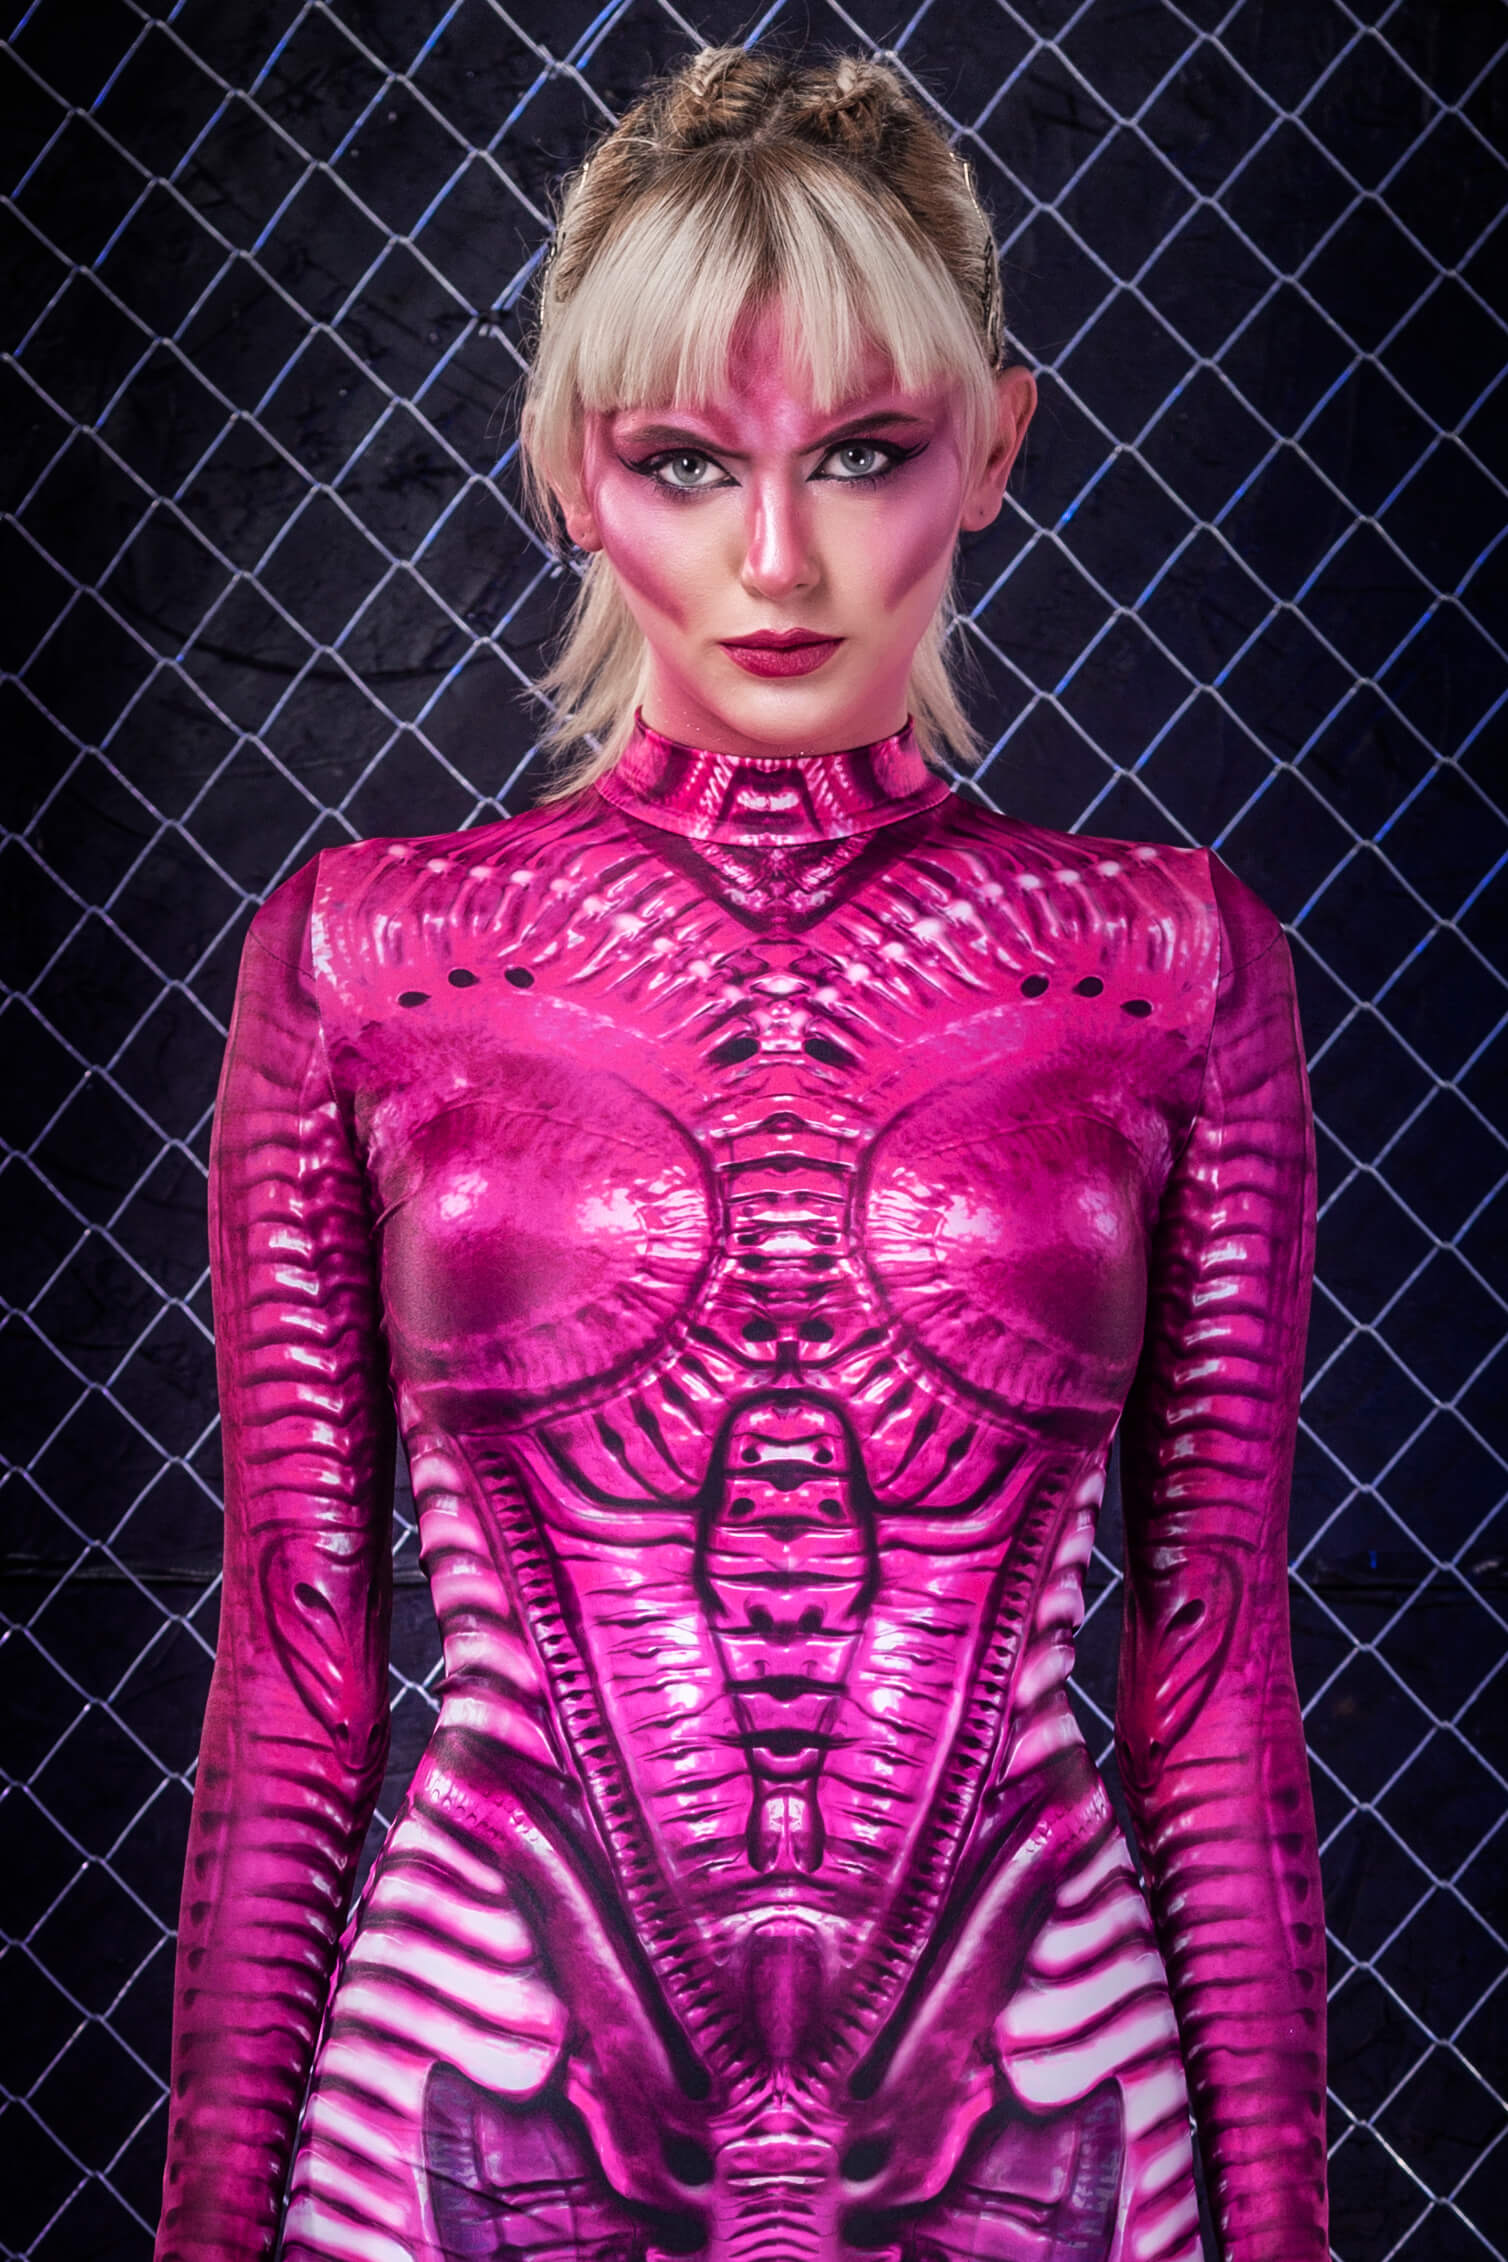 Sexy Halloween Costumes for Women 2019 - Best Scary Woman's Halloween Costume - Alien Costumes Adults